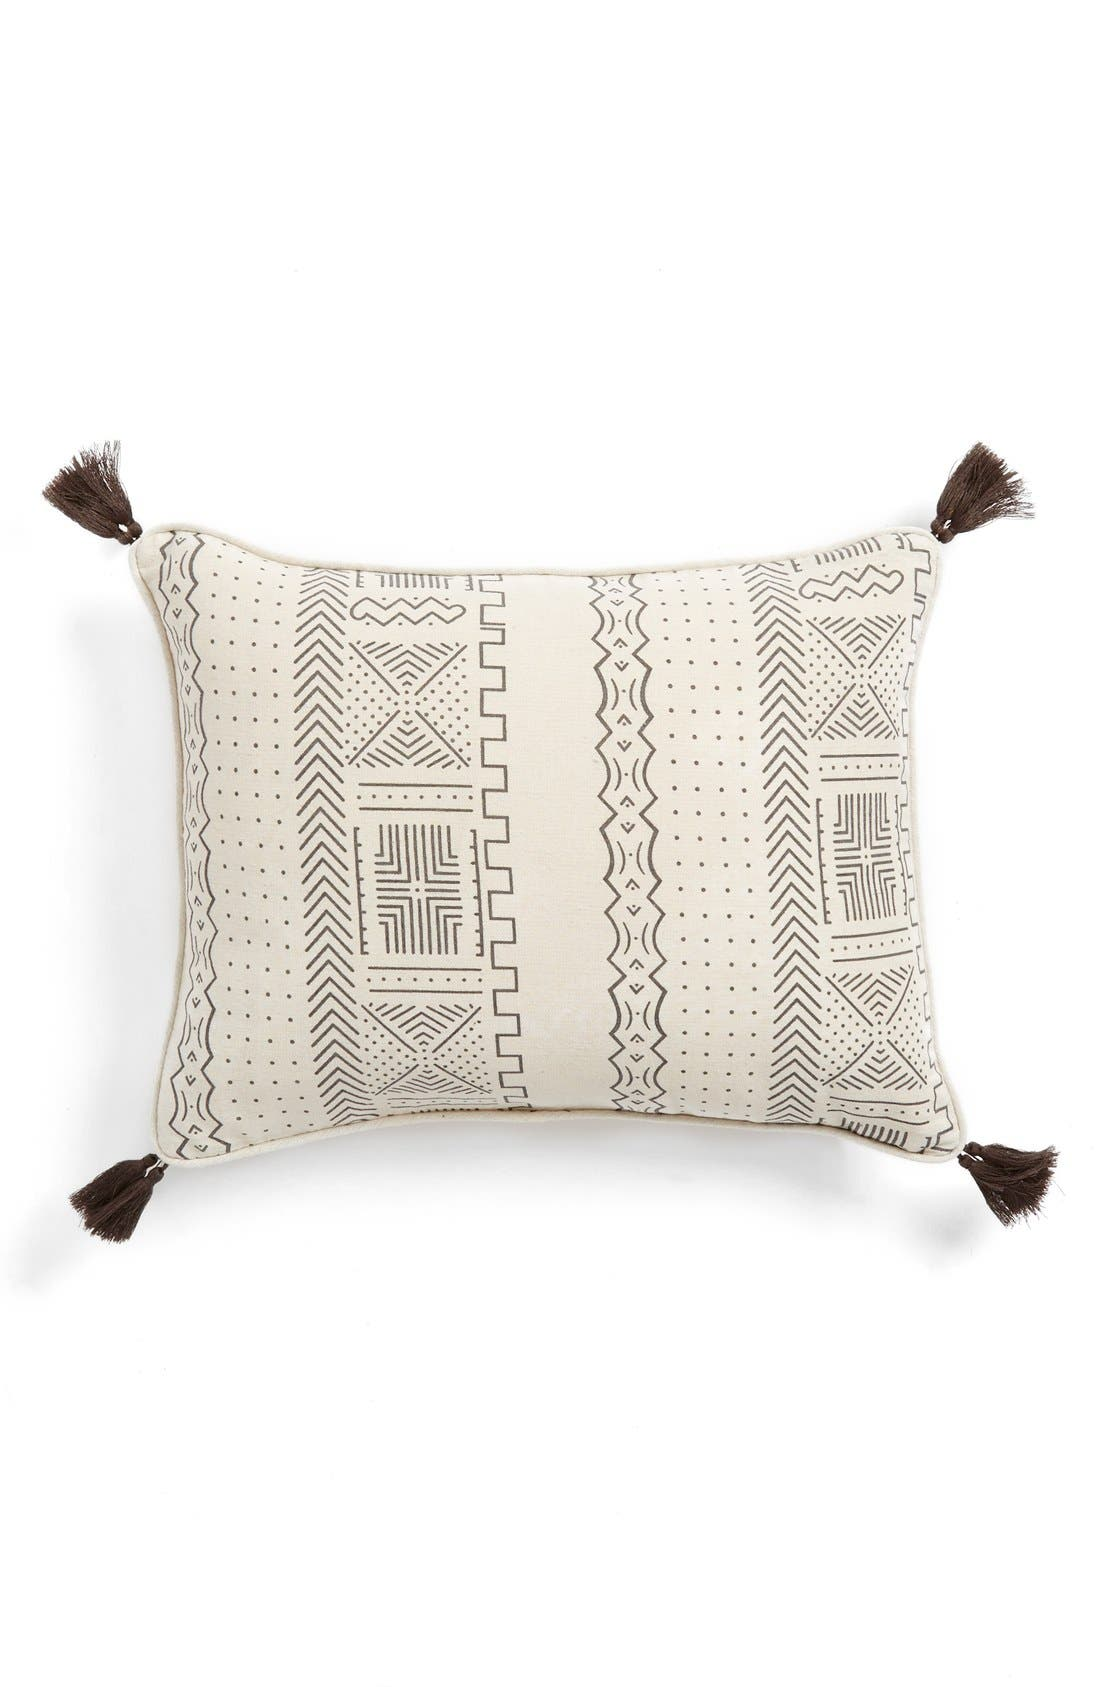 Levtex 'Taza' Tassel Trim Pillow